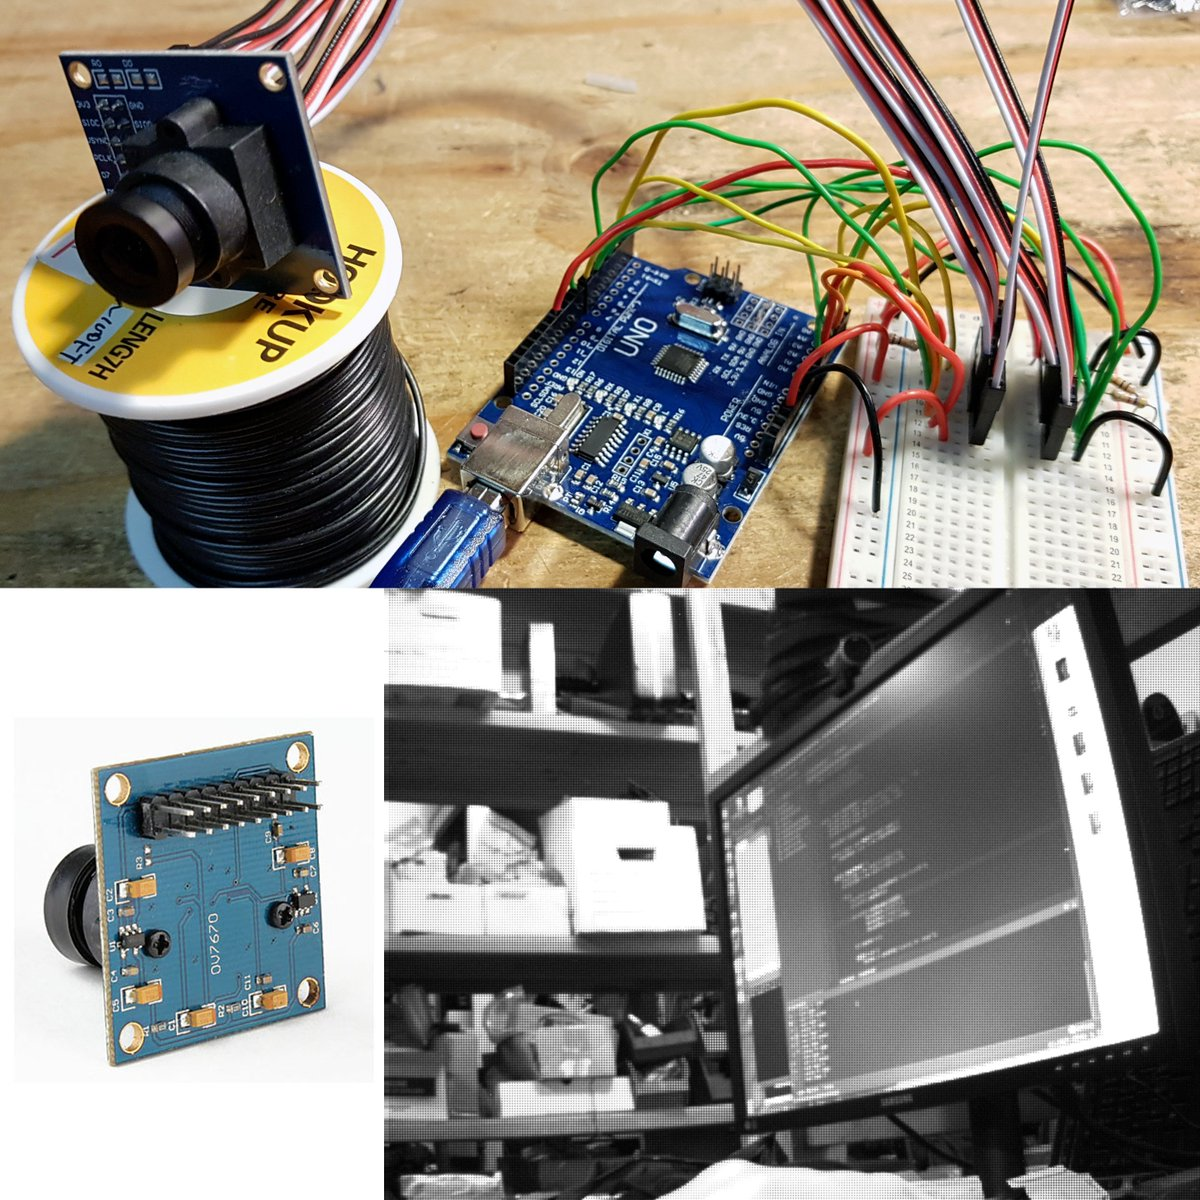 Cheapest Usb Camera Solution For Low Res Frame Rate Robot Vision Electronic Circuit Java App The Output Image Is Fine But Each 640x480 Takes Over 5 Seconds To Capture And Serial Into Host System What I Need Minimum